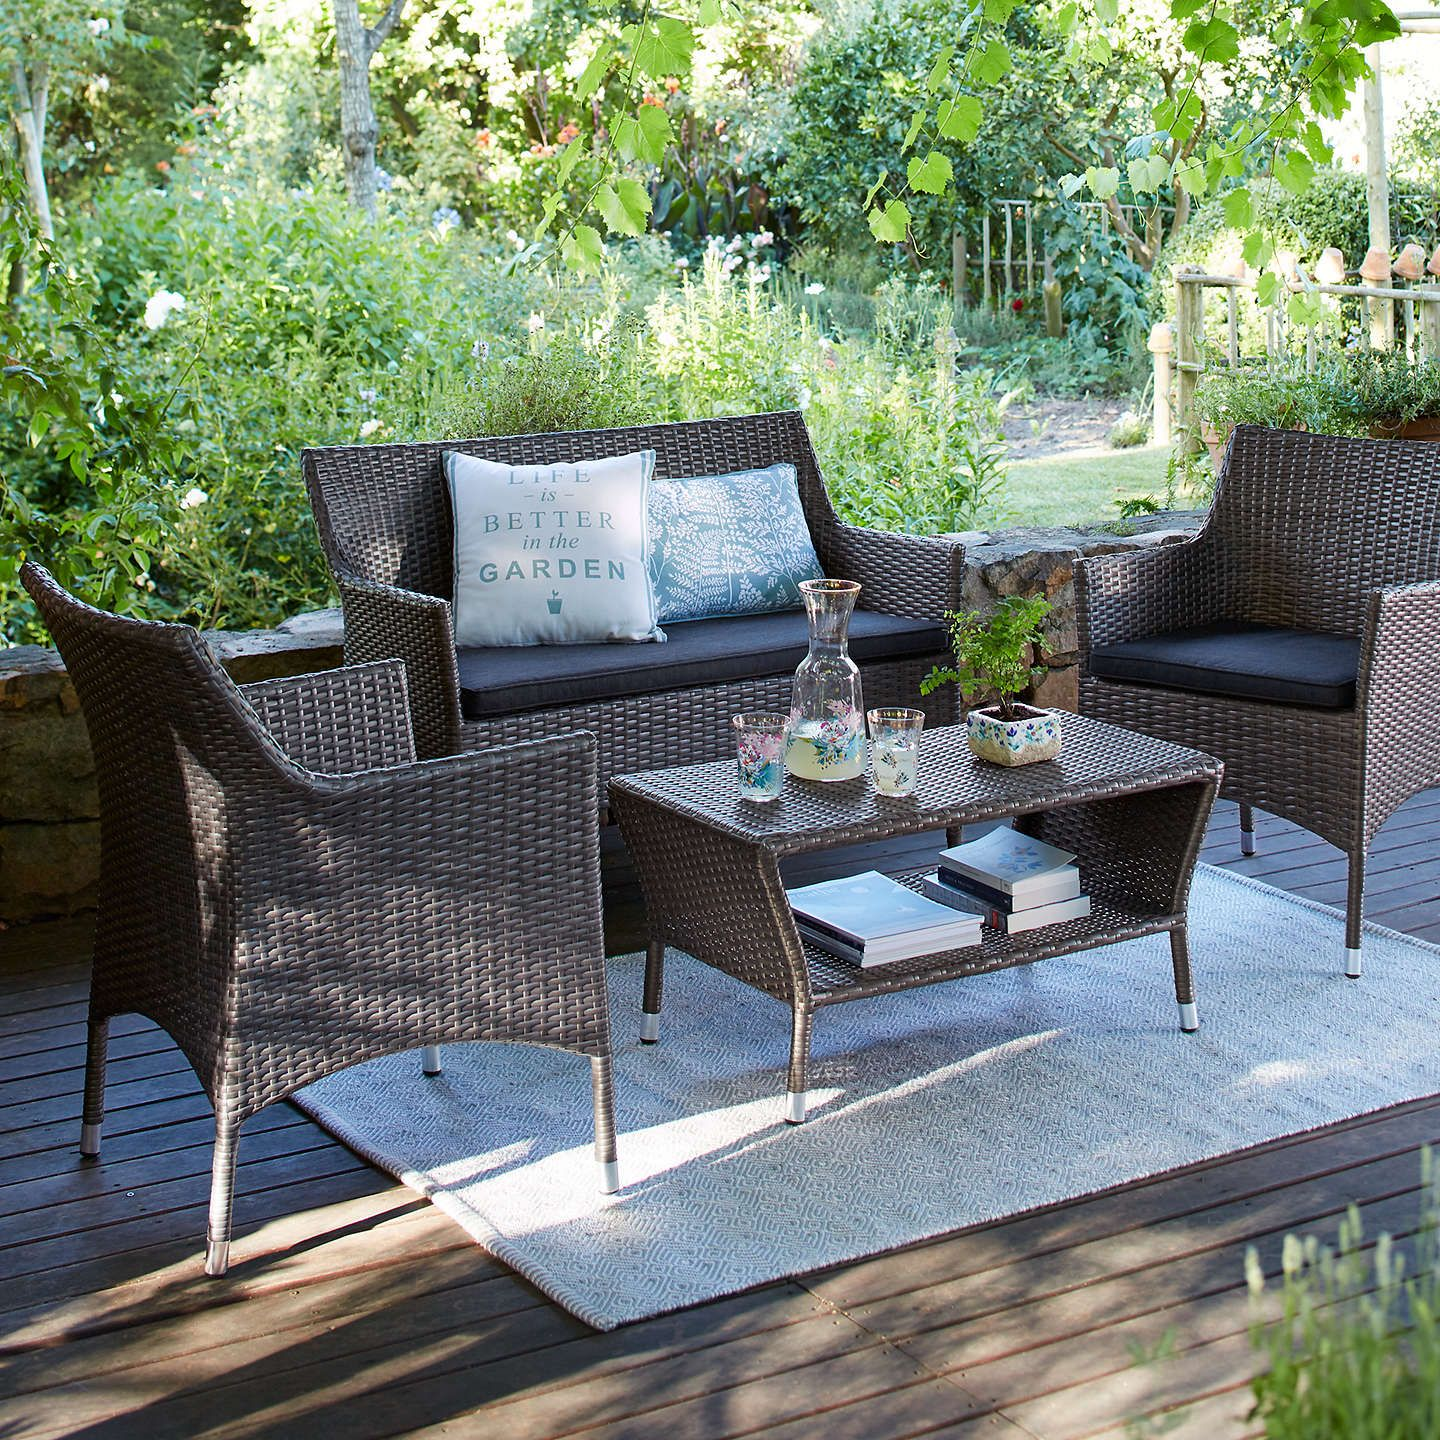 Oasis 4 Seater Garden Lounging Table And Chairs Set: John Lewis Almeria Garden 4 Seater Table And Chairs